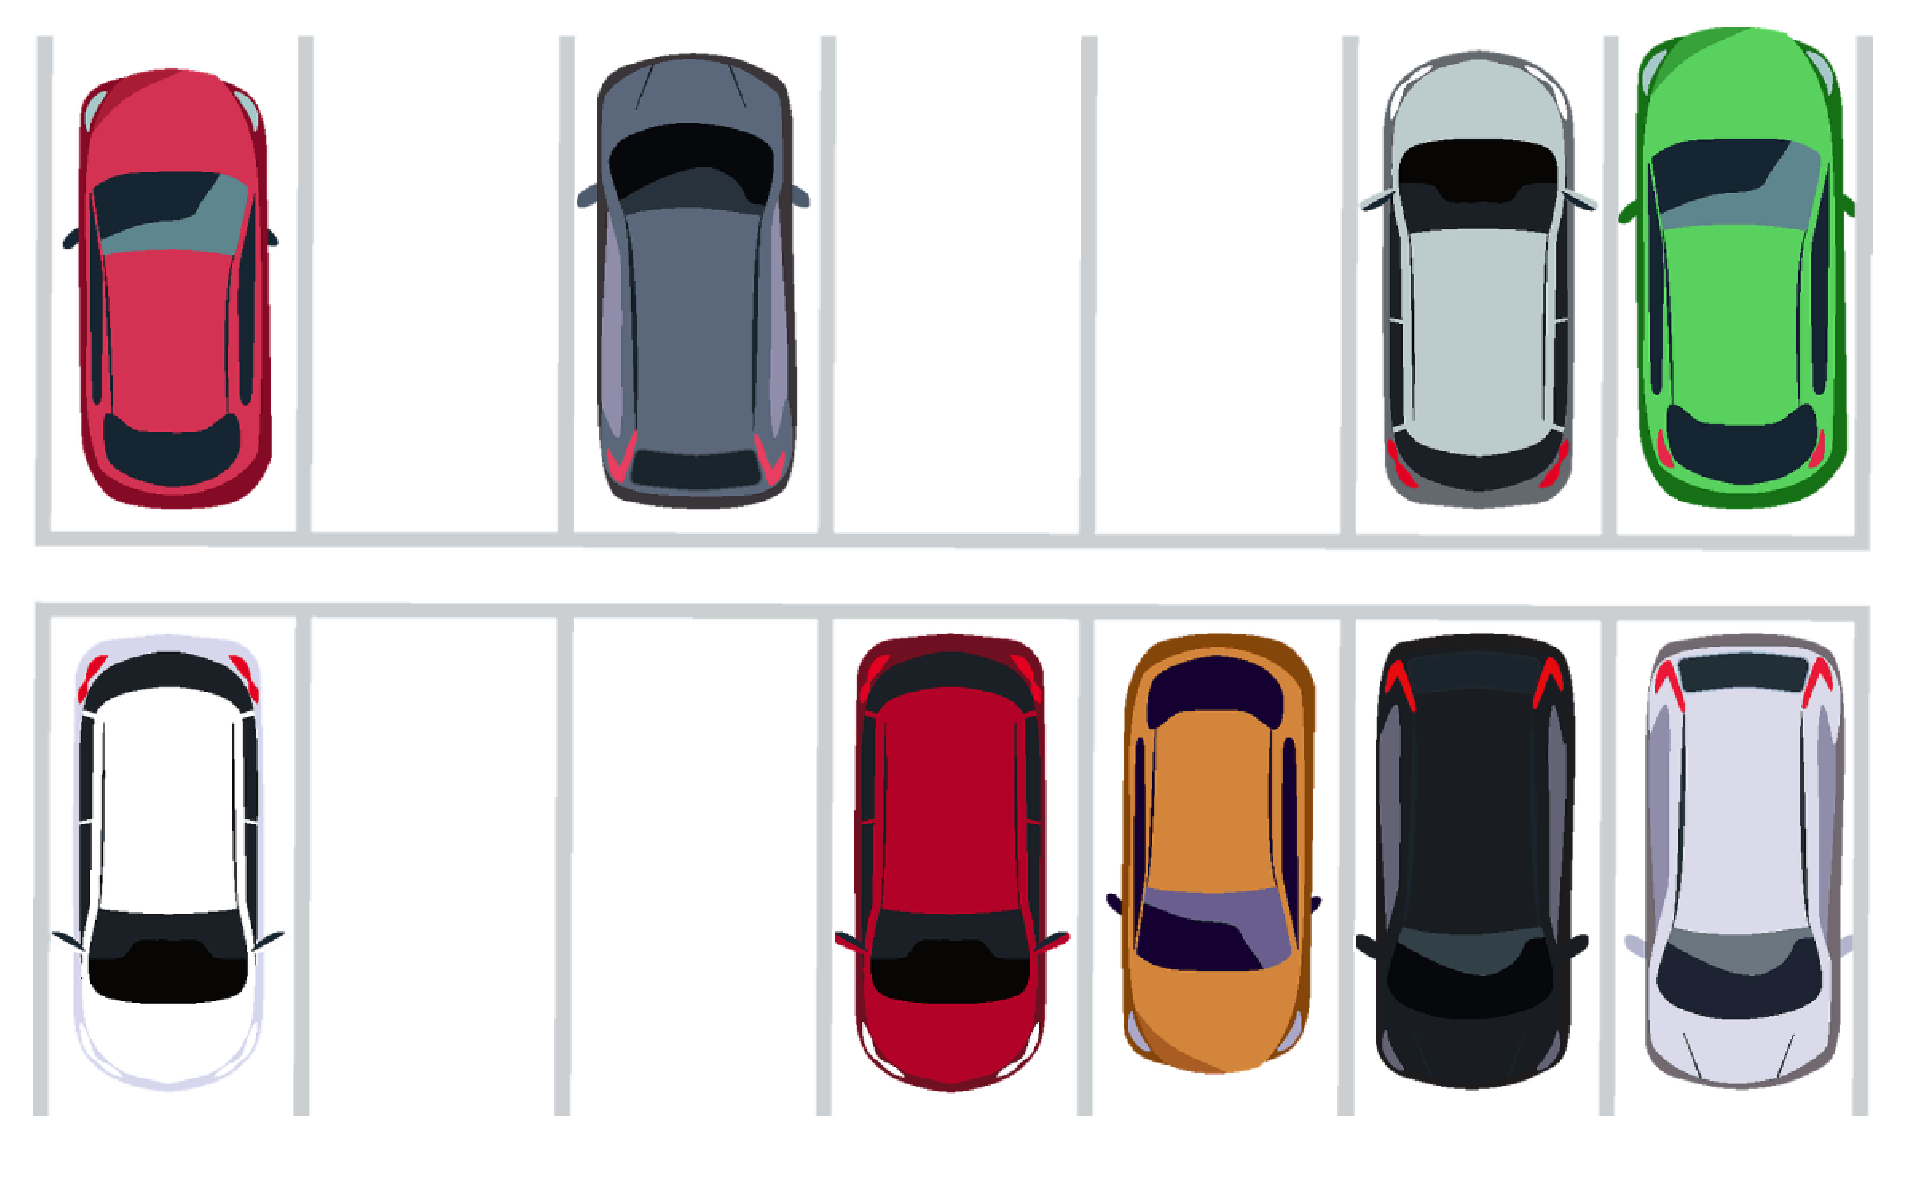 A parking lot, with both parked cars and free parking spots